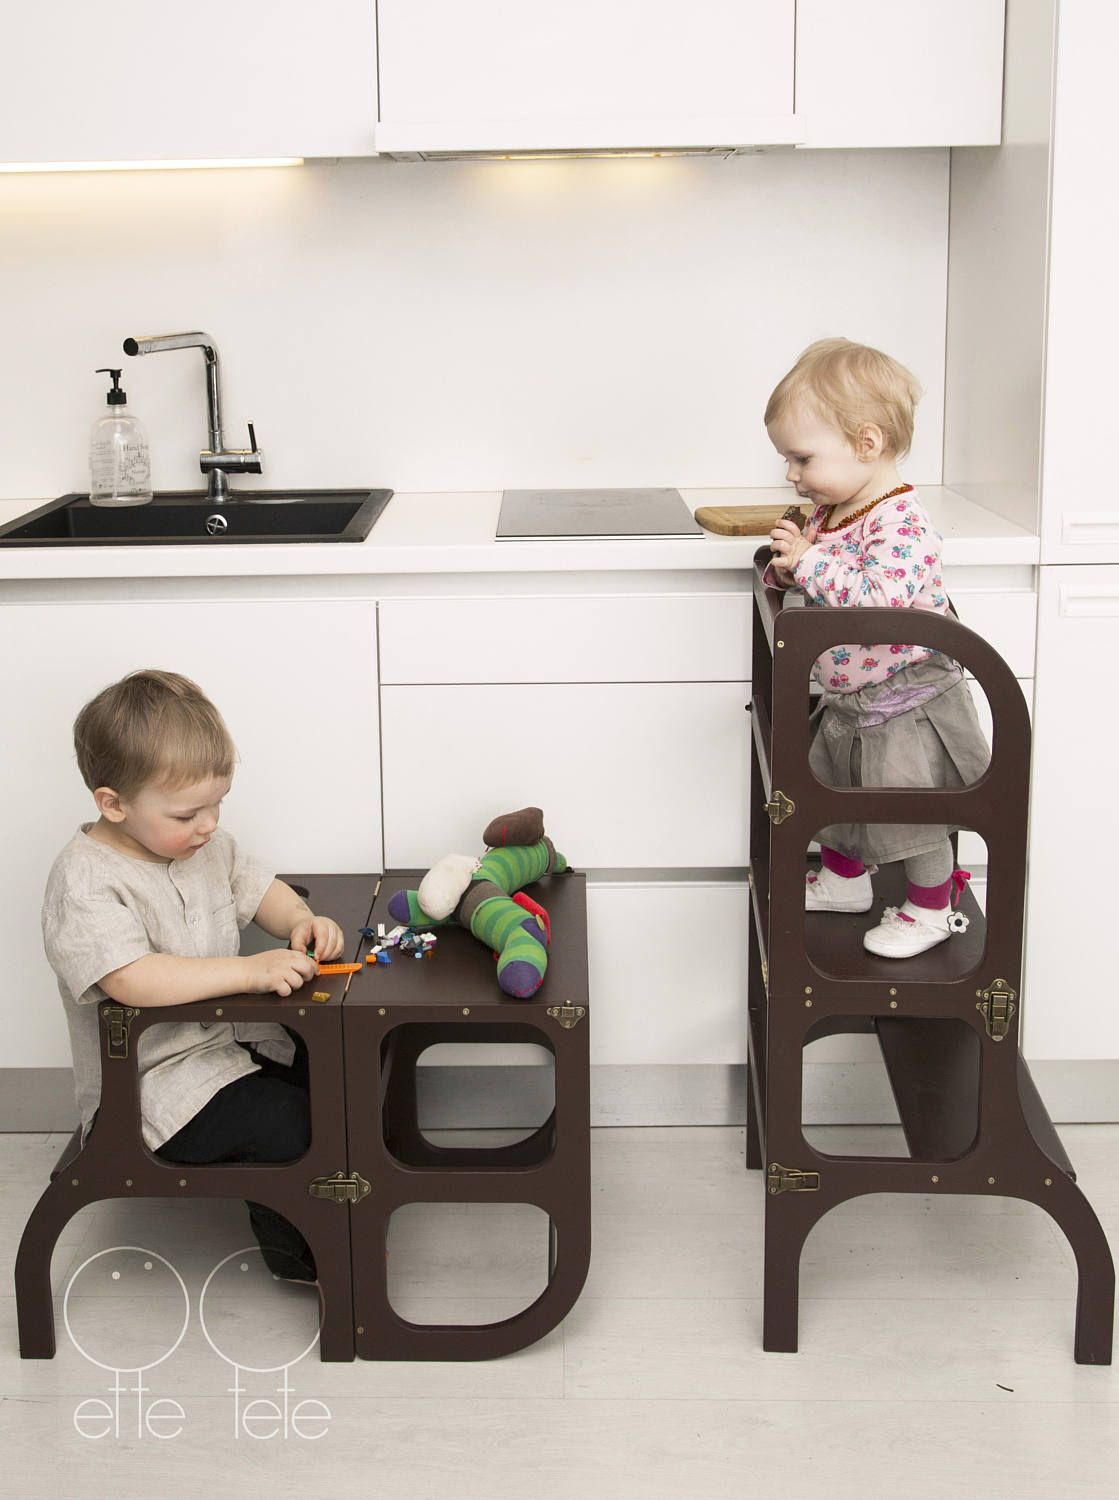 Etsy Little helper tower / table / chair all-in-one Step\'n\'sit ...